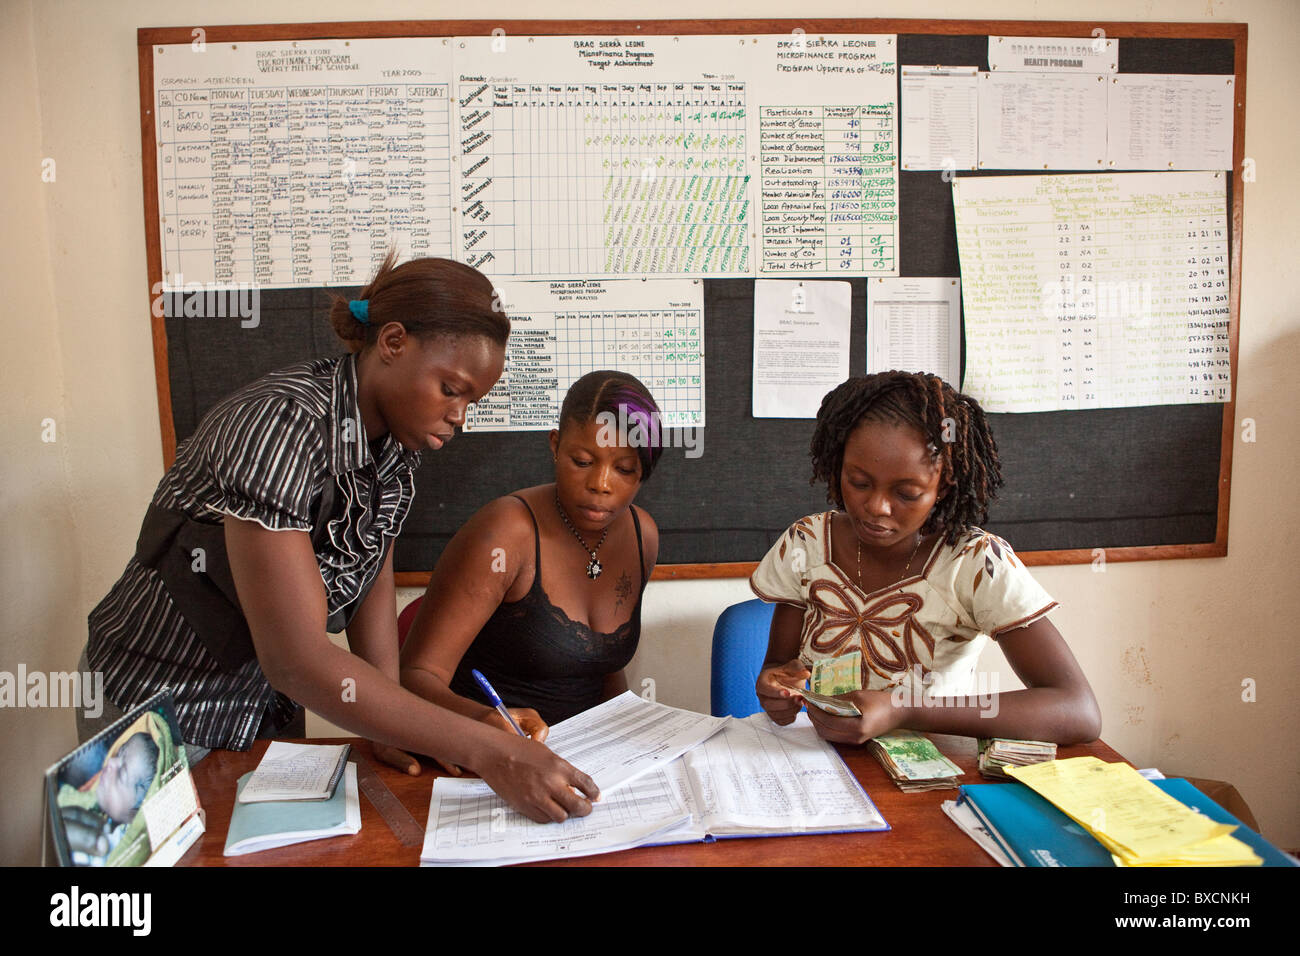 A woman signs for a microfinance loan in an office in Freetown, Sierra Leone, West Africa. - Stock Image